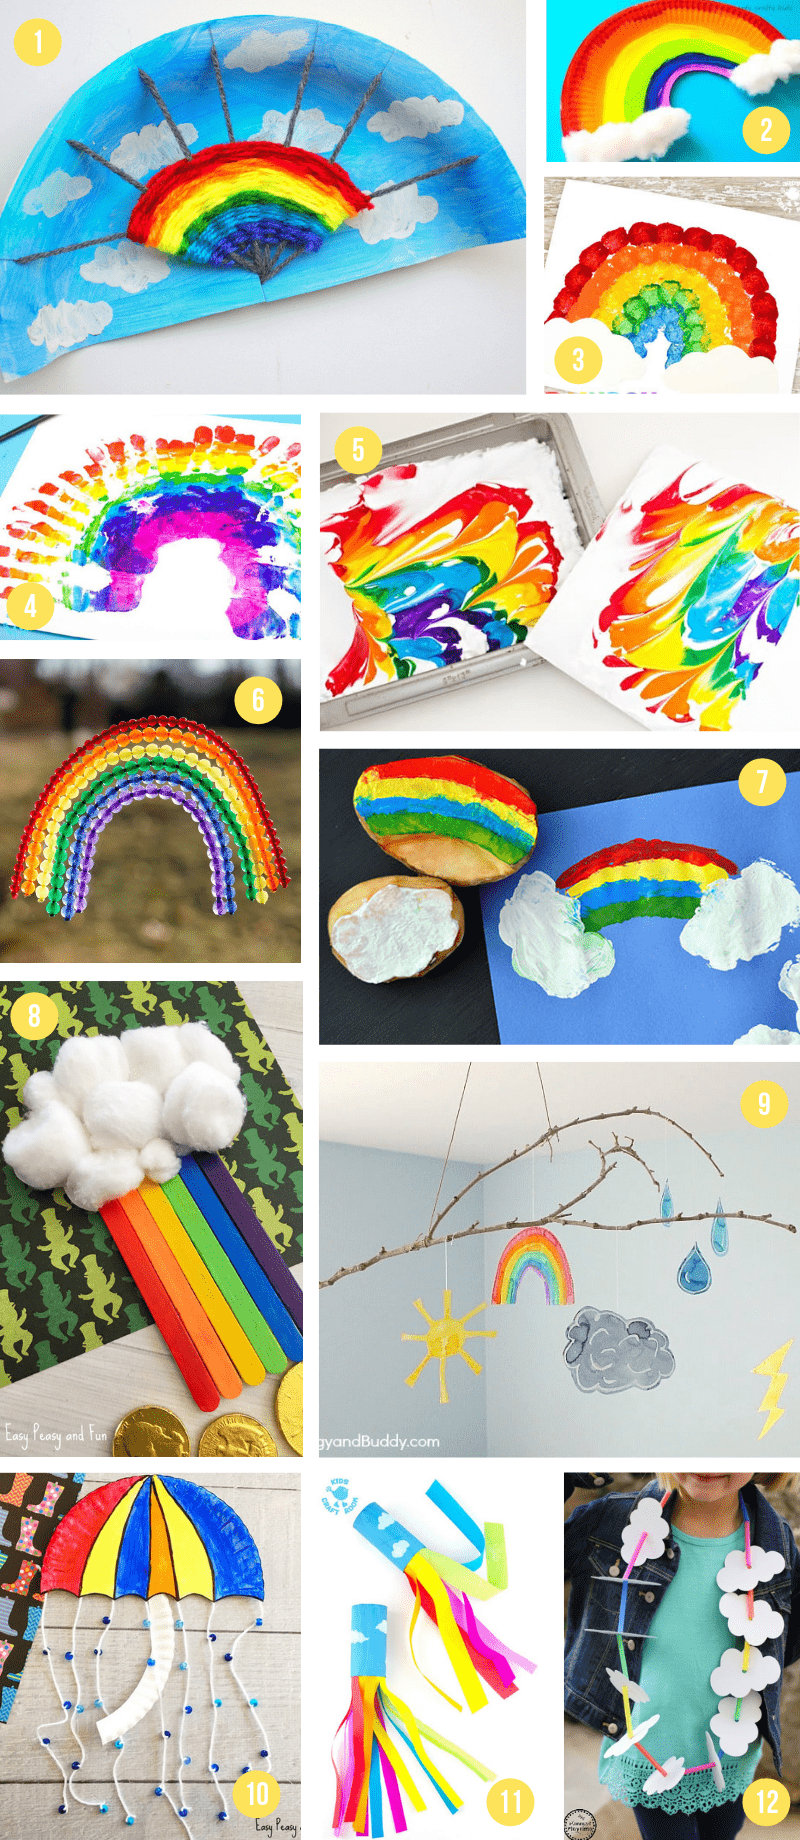 The Epic Collection Of Spring Crafts For Kids All The Best Art Projects Activities To Celebrate The Season What Moms Love